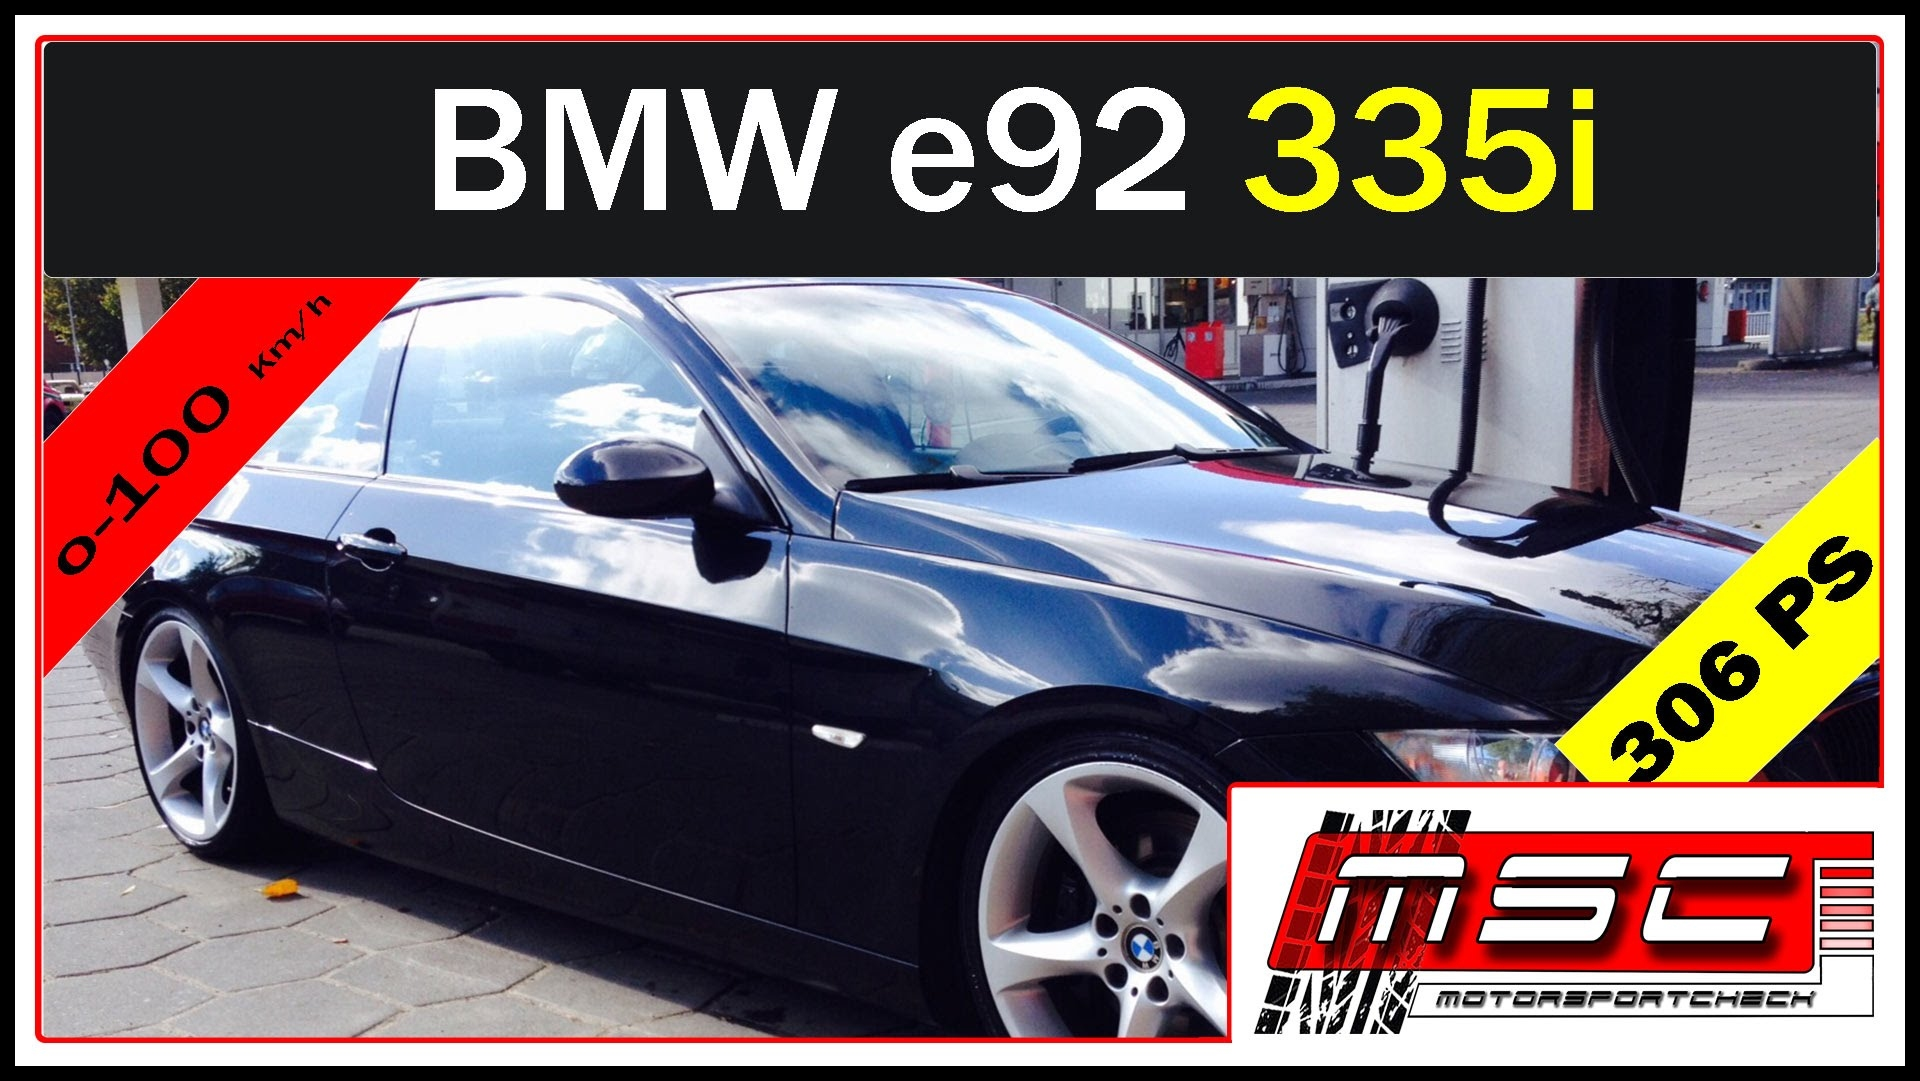 BMW e92 Coupé 335i 0 100 100 200 Topspeed 1 4 mile 400m acceleration Twin Turbo by Motorsportcheck